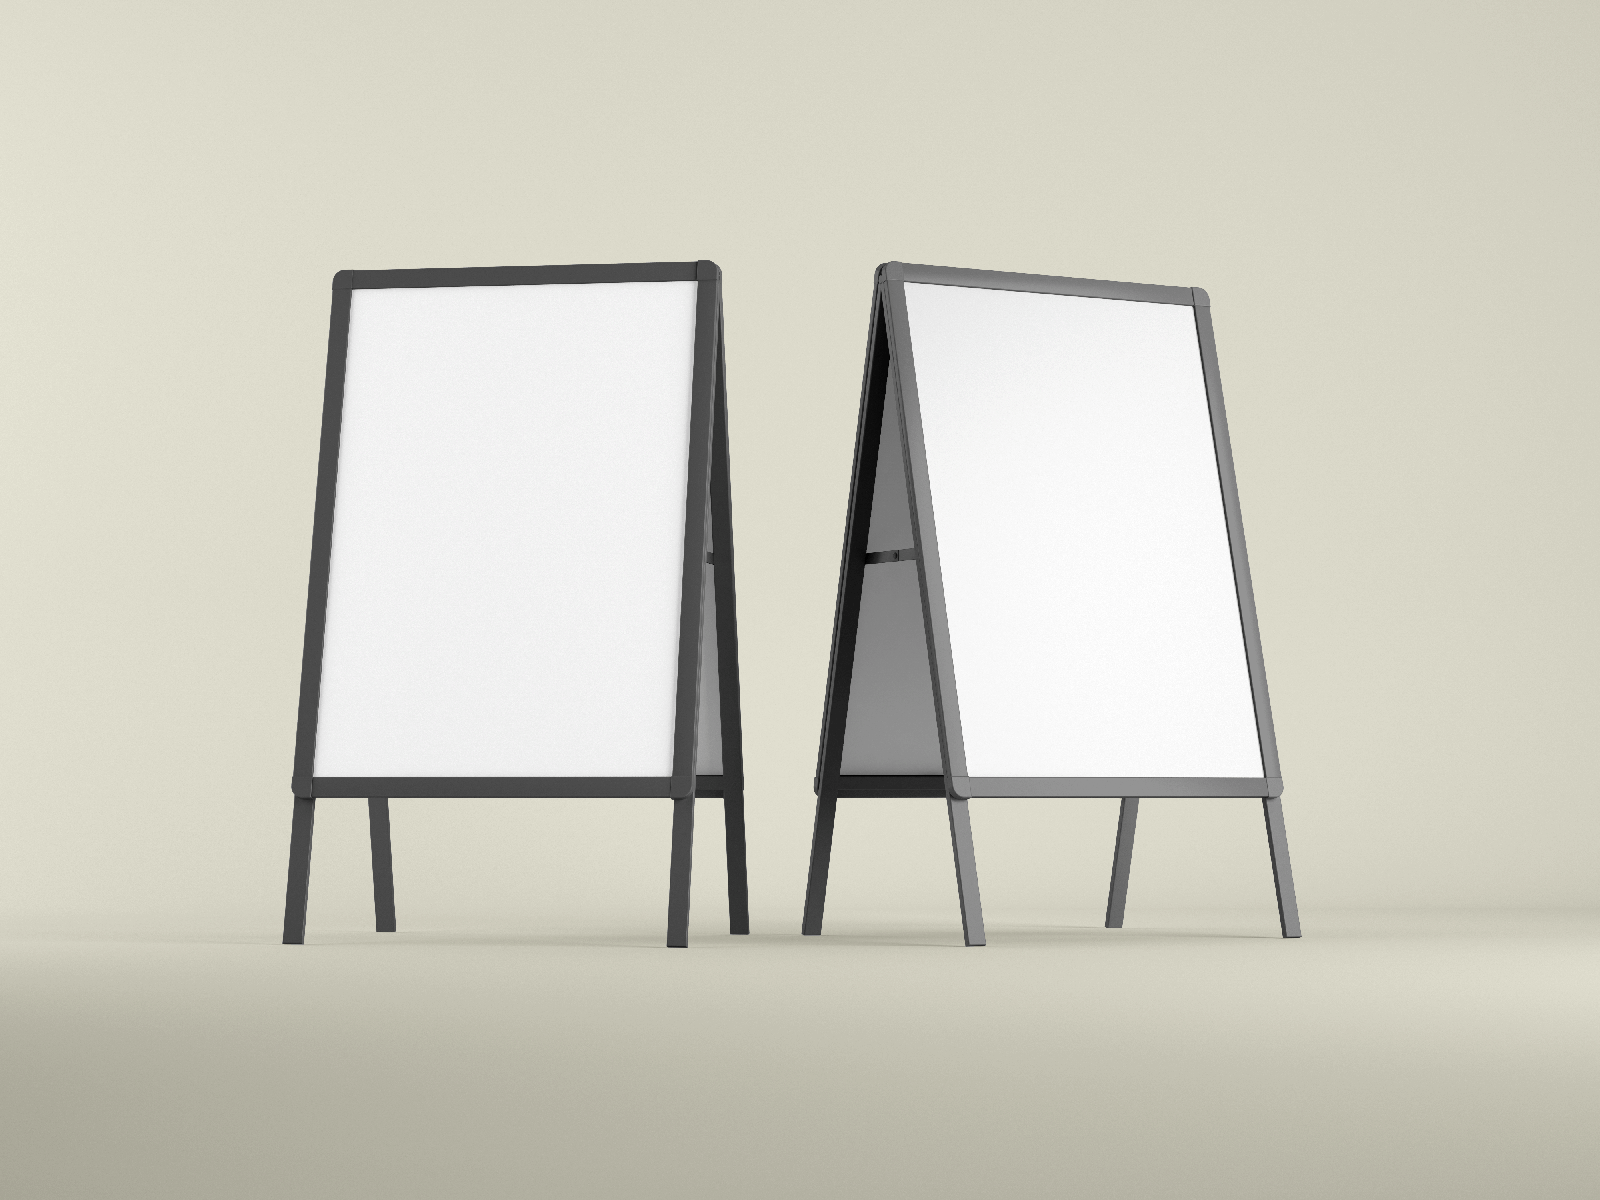 Free Advertising A-Stand Mockup Set